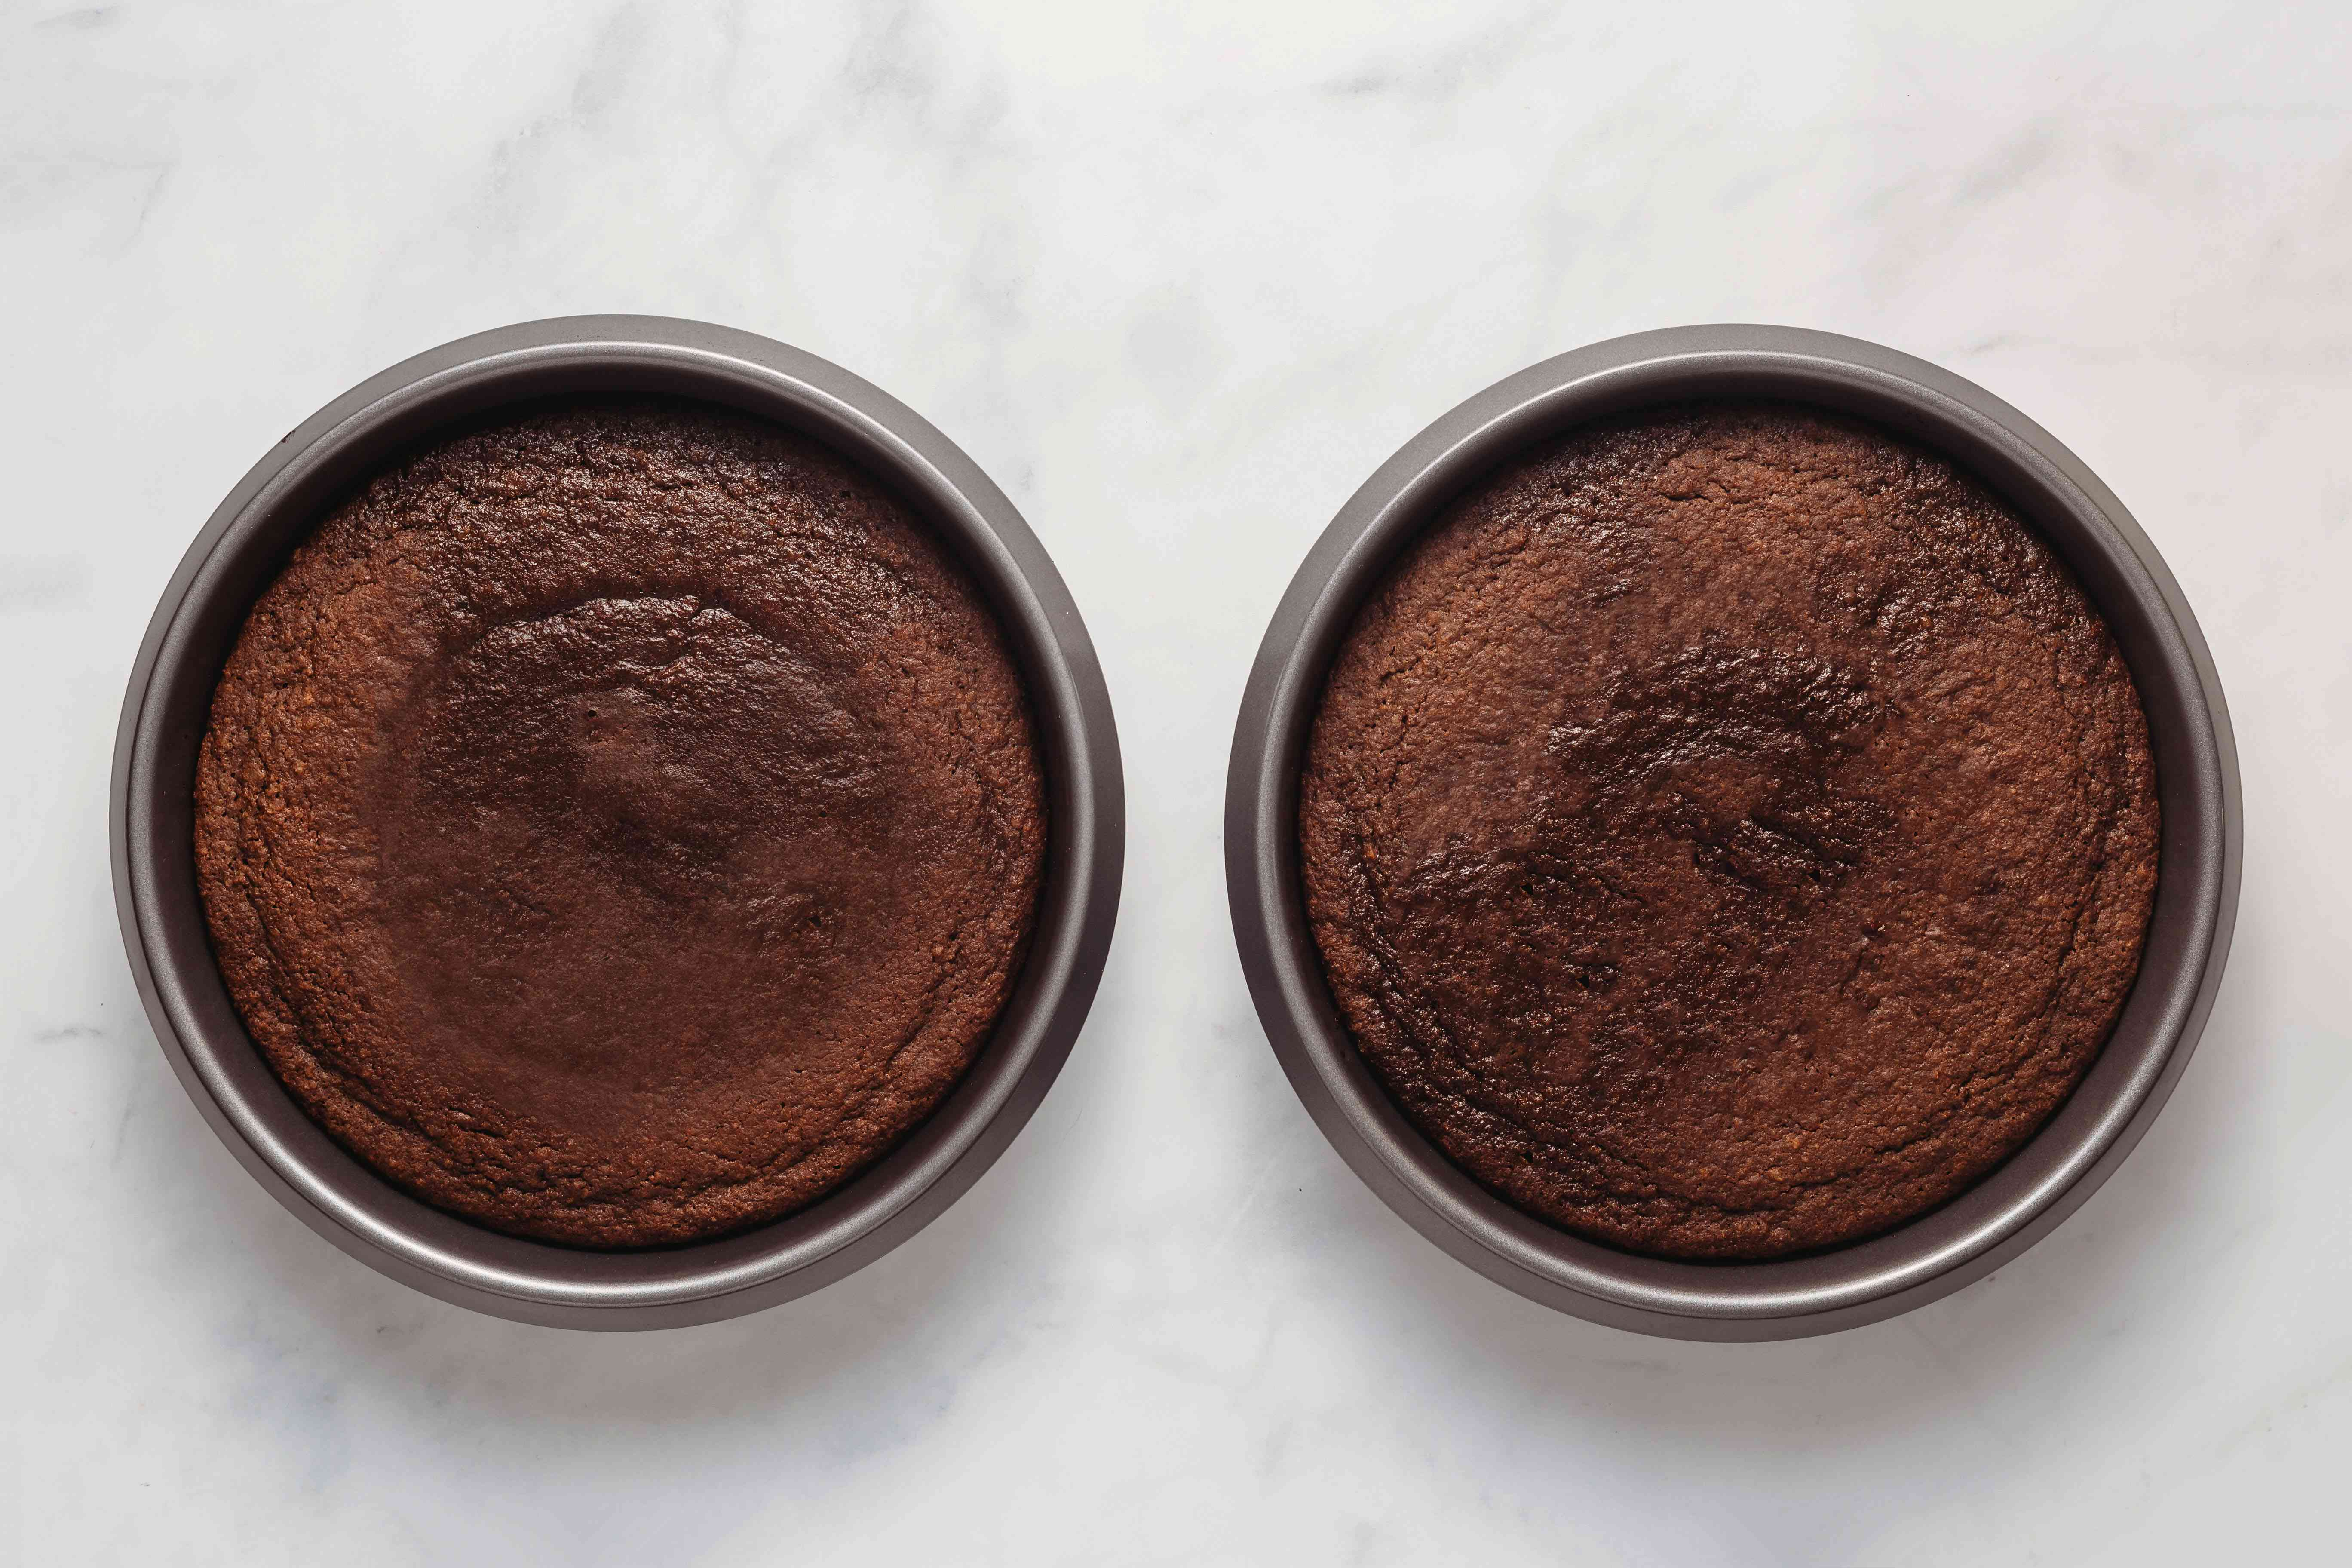 baked cakes in cake pans